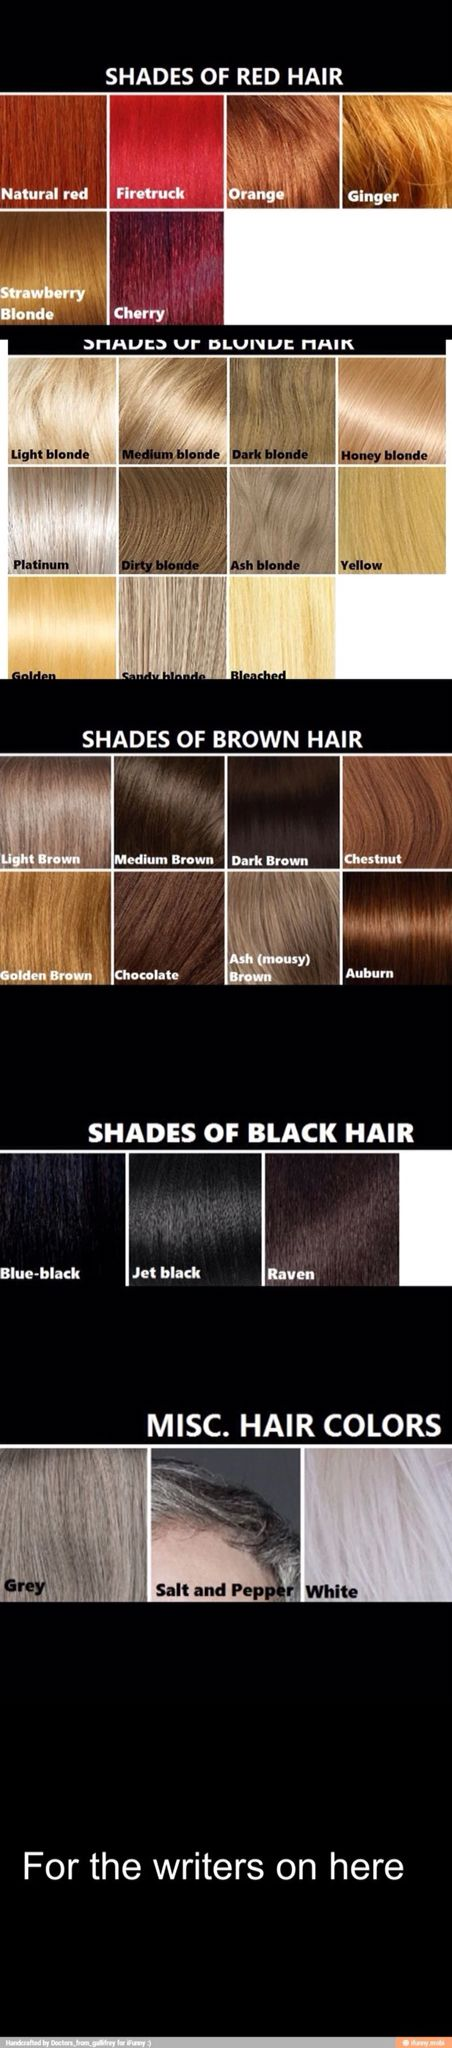 Hair colors to make your characters realistic